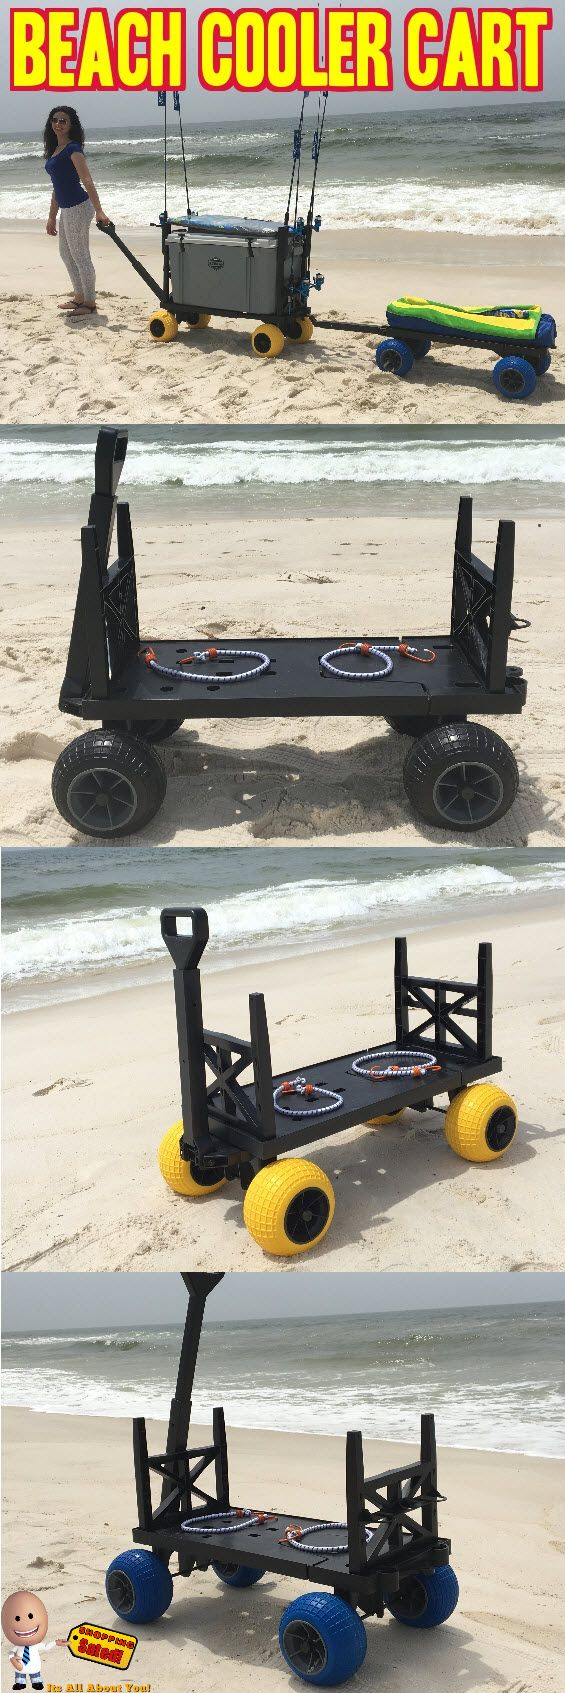 This Beach Cooler Cart is perfect for hauling your Yeti, Rtic, Igloo ice chest cooler. This beach wagon can haul loads up to 300 lbs on solid ground and up to 60 lbs in deep soft sand. This hand pull wagon will never rust due to contact with salt or fresh water. It's the perfect flatbed cart for transporting your large medium or small coolers and beach gear to and from your vehicle. Click Here Now for more information: http://www.shoppingsated.com/store/p51/Plus_One_Beach_Cart.html